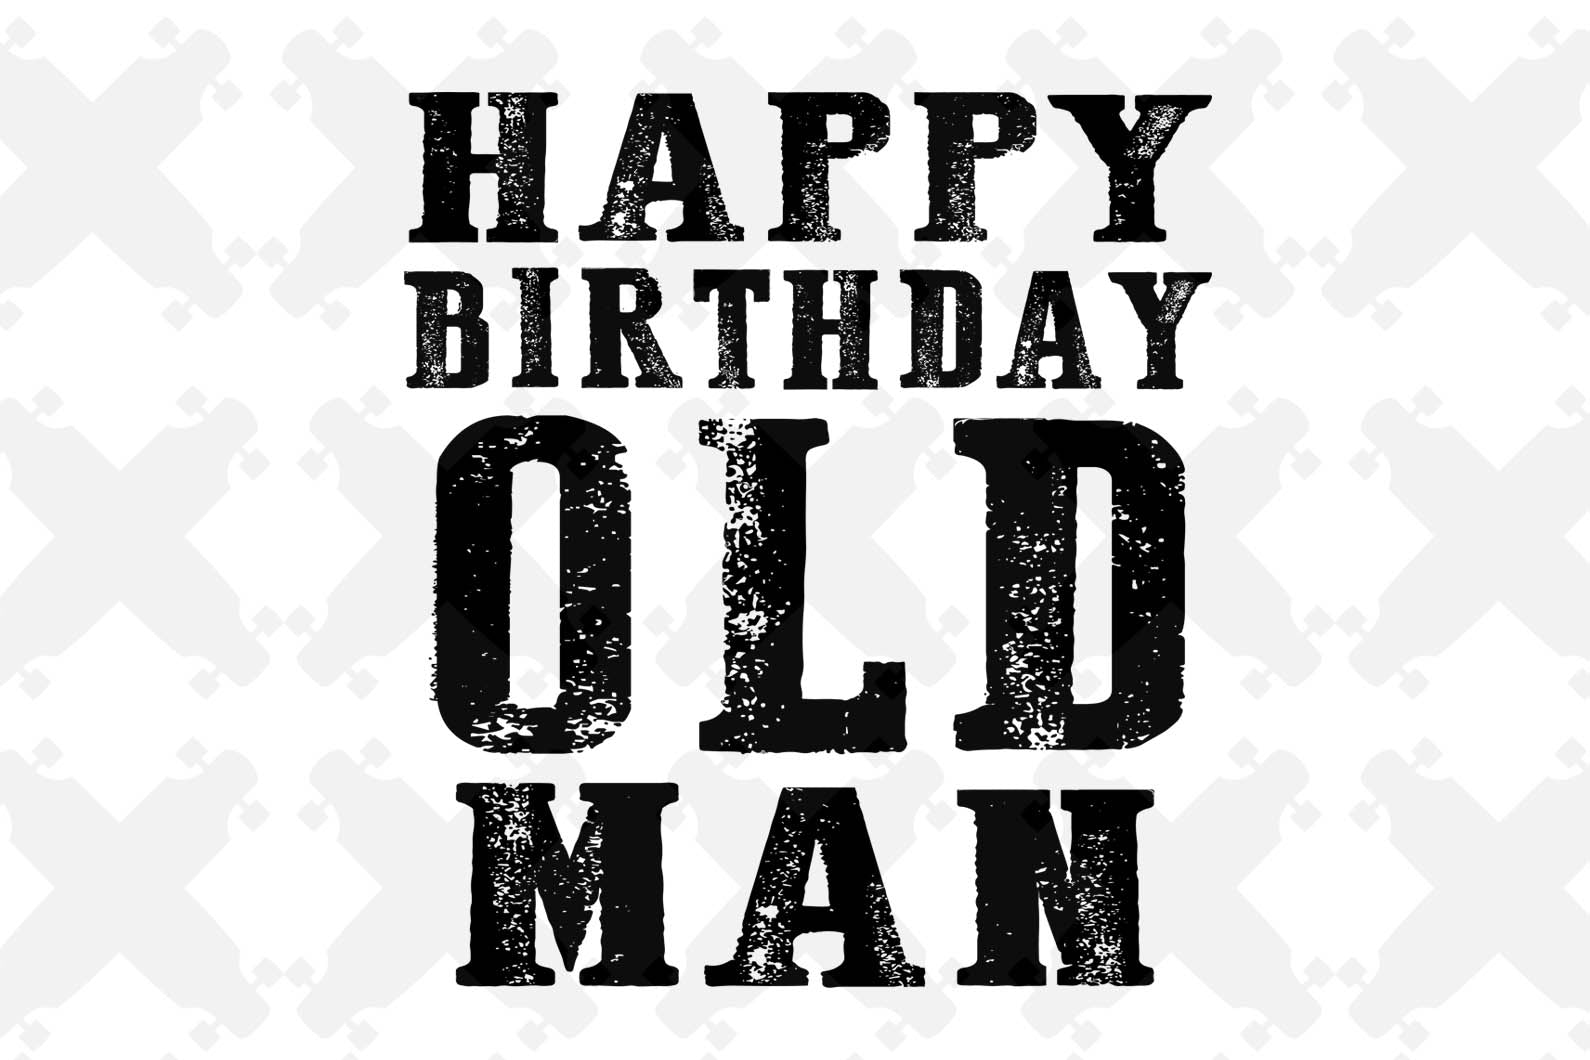 Happy birthday old man, birthday old man,old man svg,birthday anniversary, birthday shirt, birthday boy, gift from parents svg cut files, svg clipart, silhouette svg, cricut svg files, decal and vinyl,